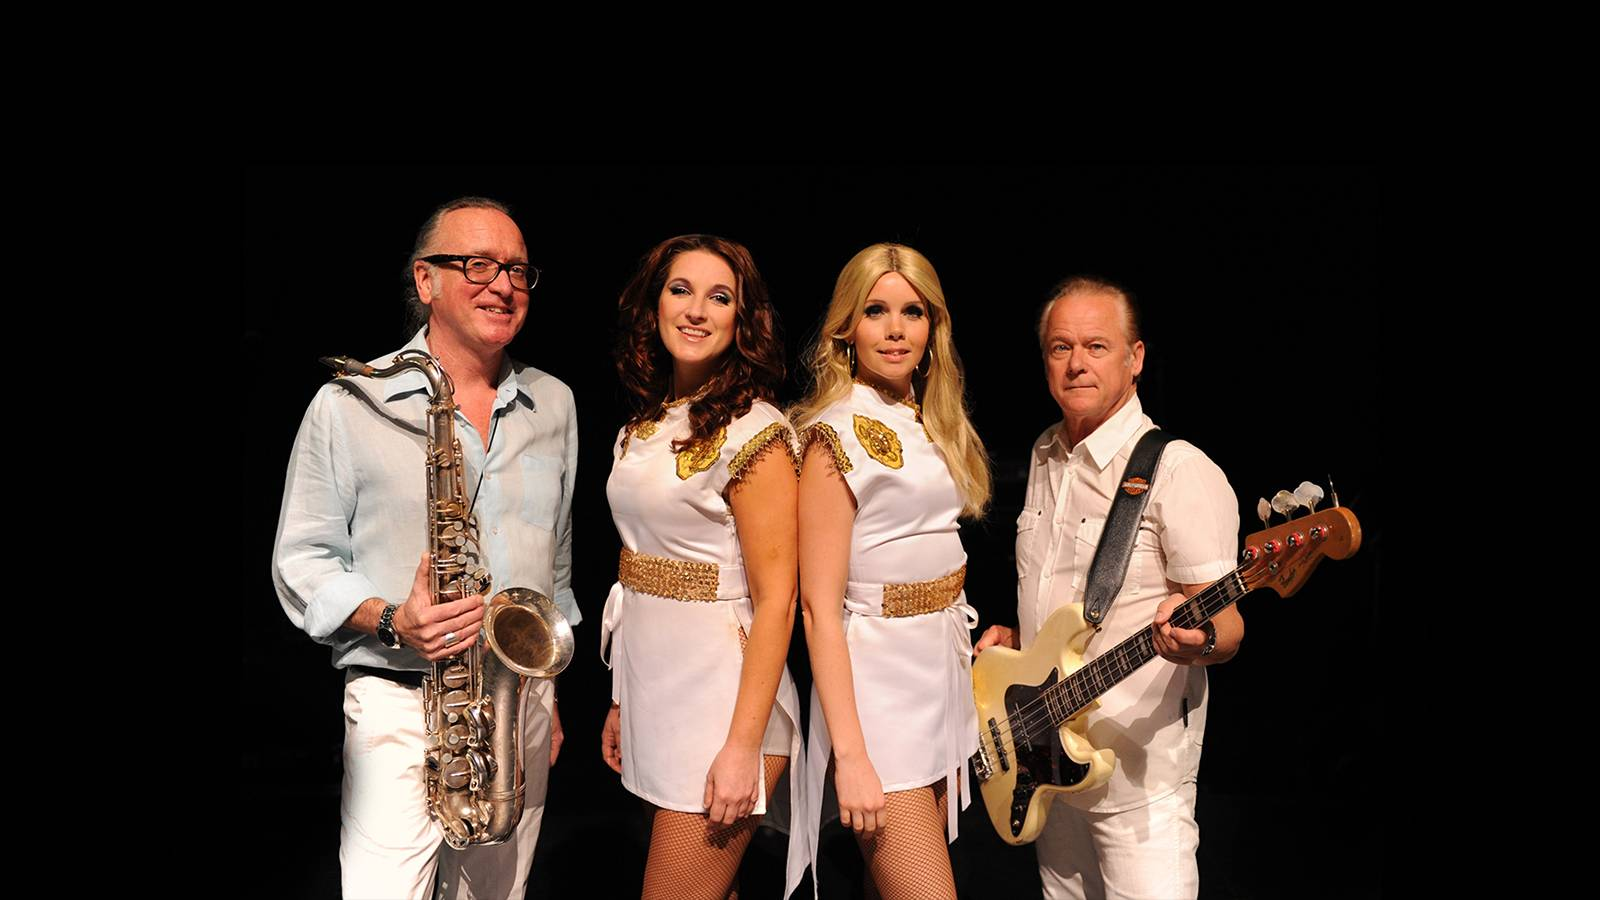 ABBA The Concert - ABBA Tribute (Rescheduled from 5/14/2020, 10/22/2020)